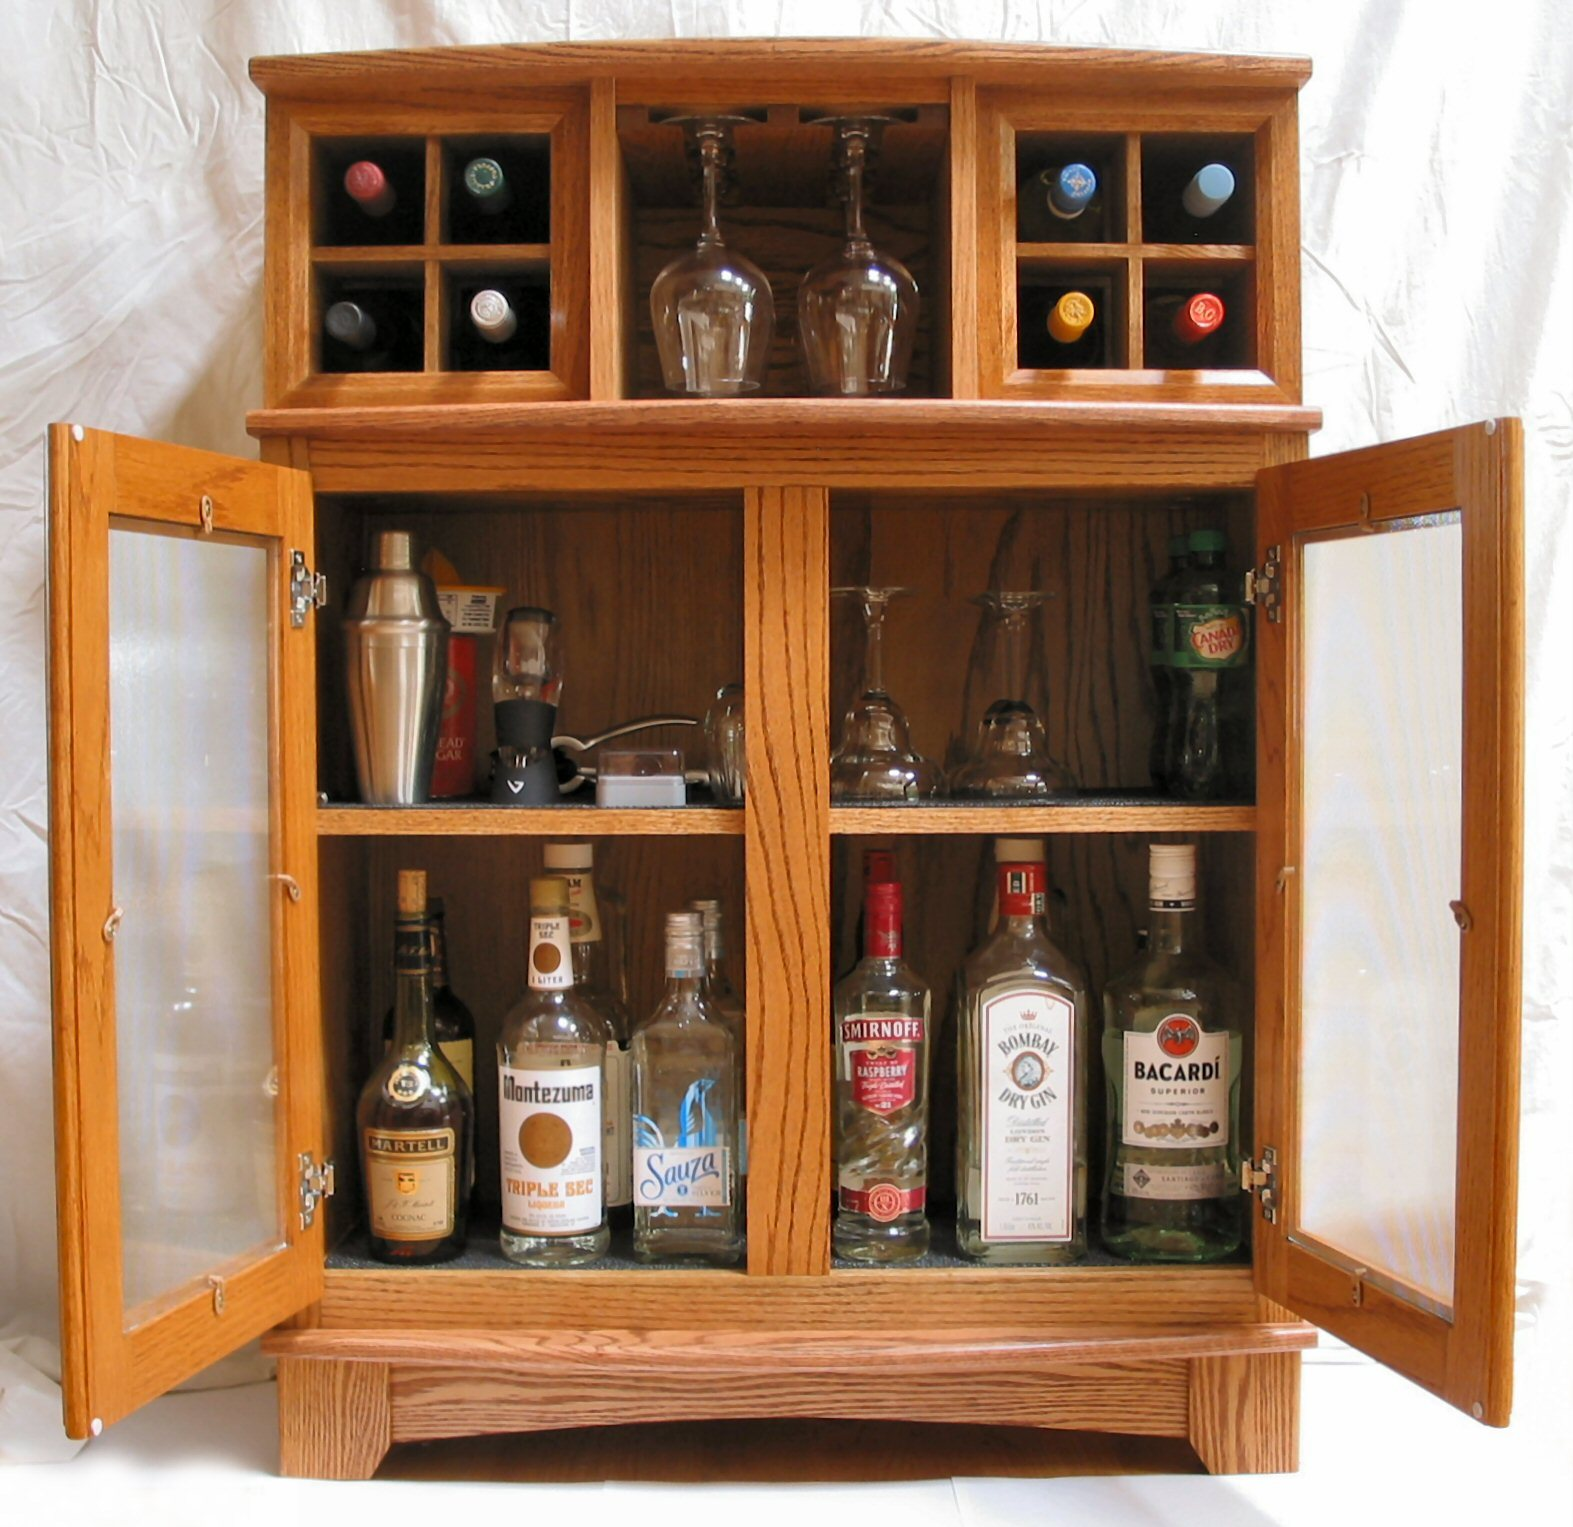 How To Build A Custom Wine Liquor Cabinet 7 Steps With Pictures Instructables